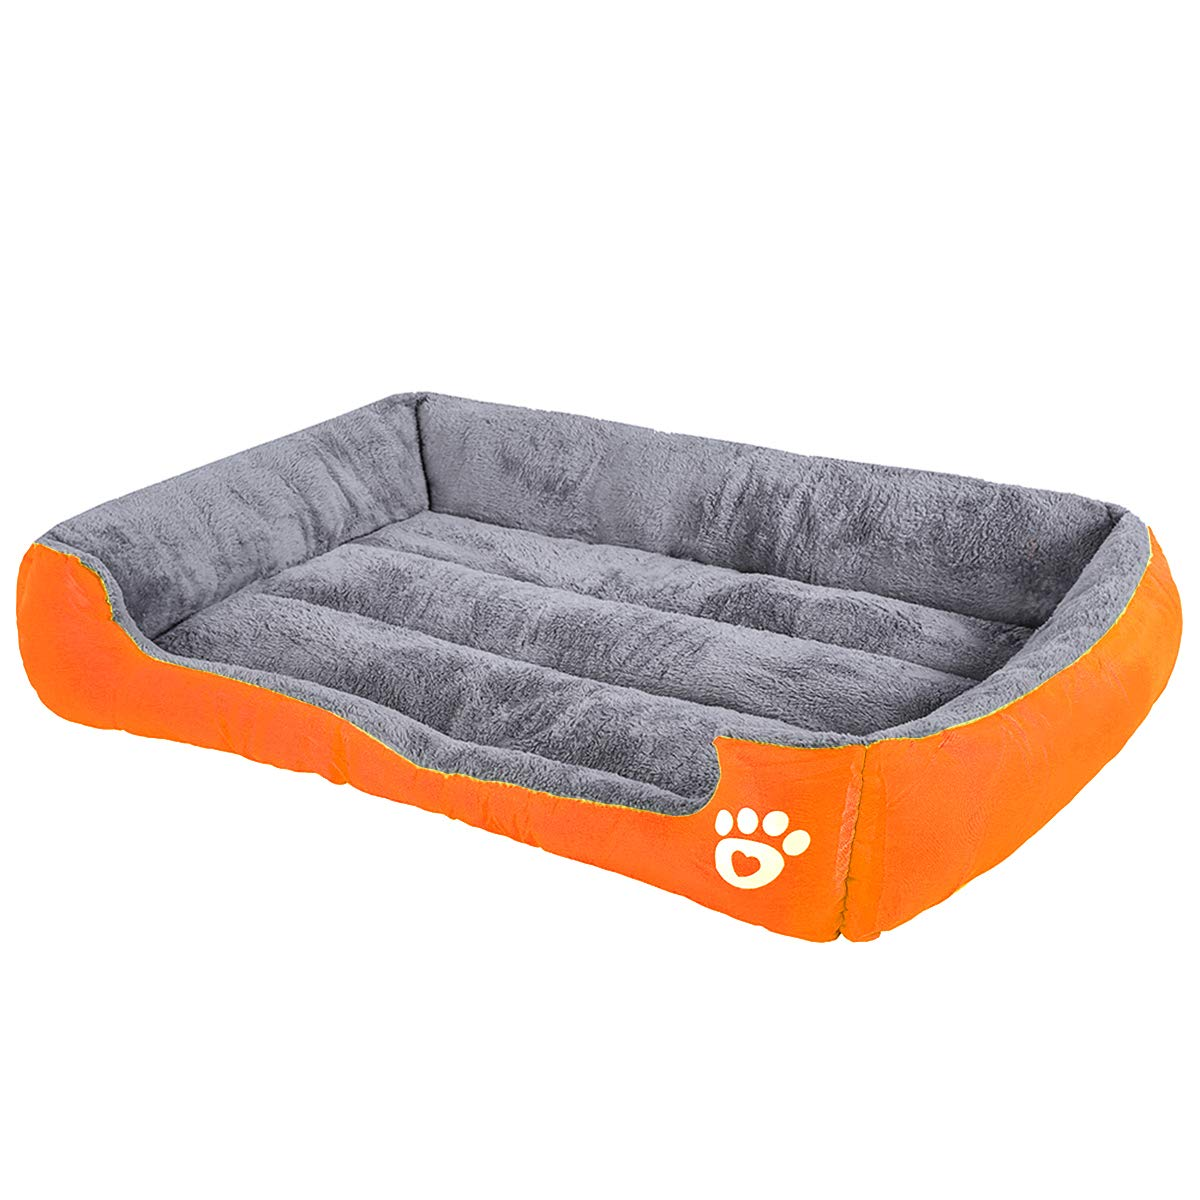 luciphia Rectangle Pet Dog Sofa Bed - Comfortable Two-Sided Cushion, Paw and Bone Patterned Linen Fabric Cover, Square Bed for Dog and Cat, Water-Resistant Bottom PAW-Orange,XL(35.4x29.5In)